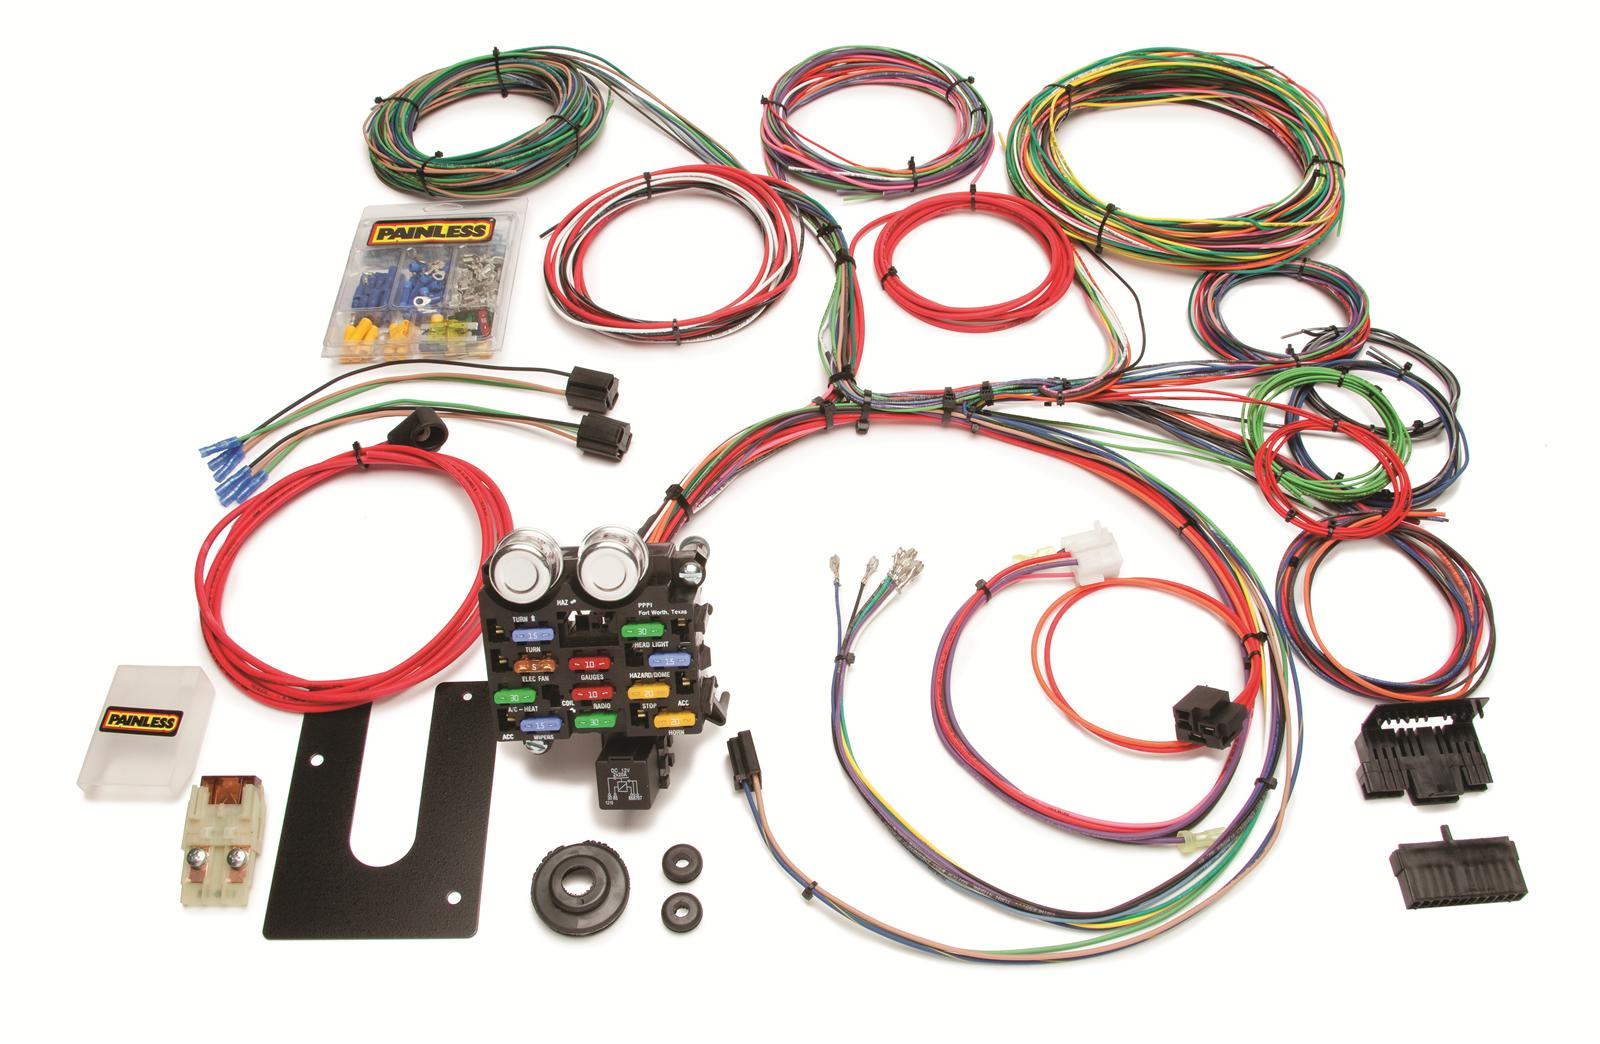 prf 10101_xl painless performance 21 circuit universal harnesses 10101 free universal truck wiring harness at creativeand.co